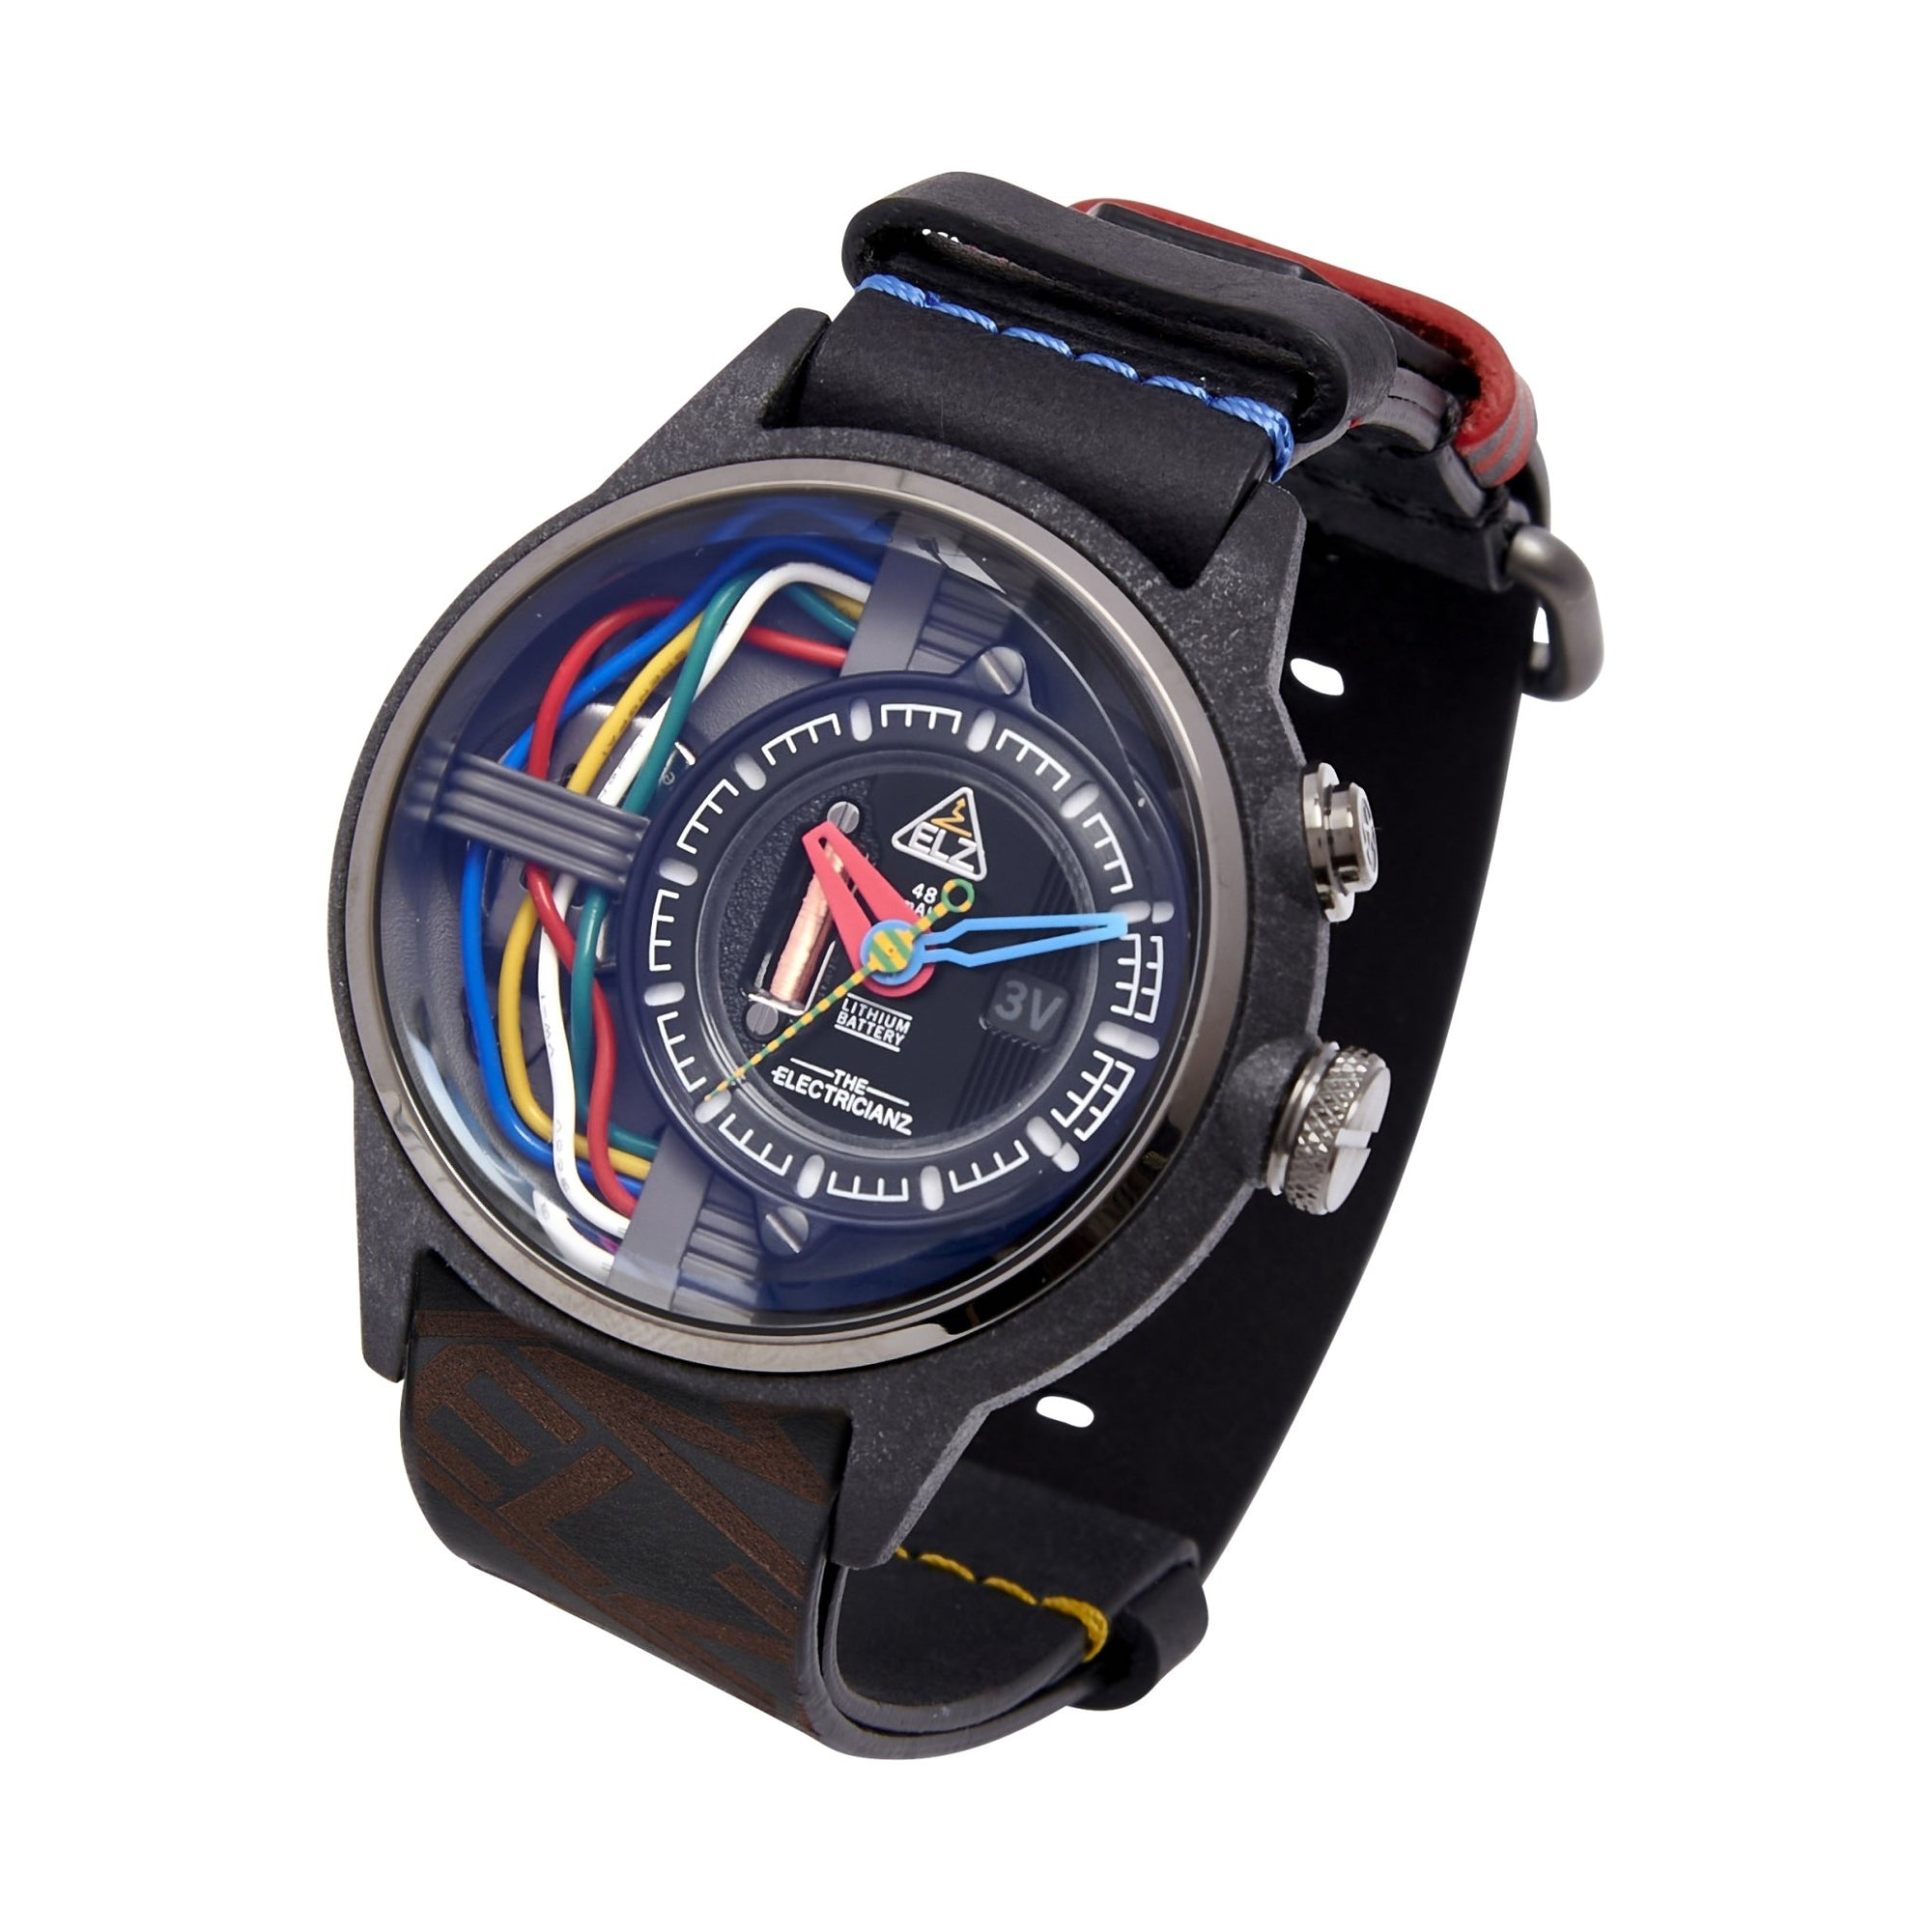 The Electricianz Nylon The Carbon Z - Watches & Crystals